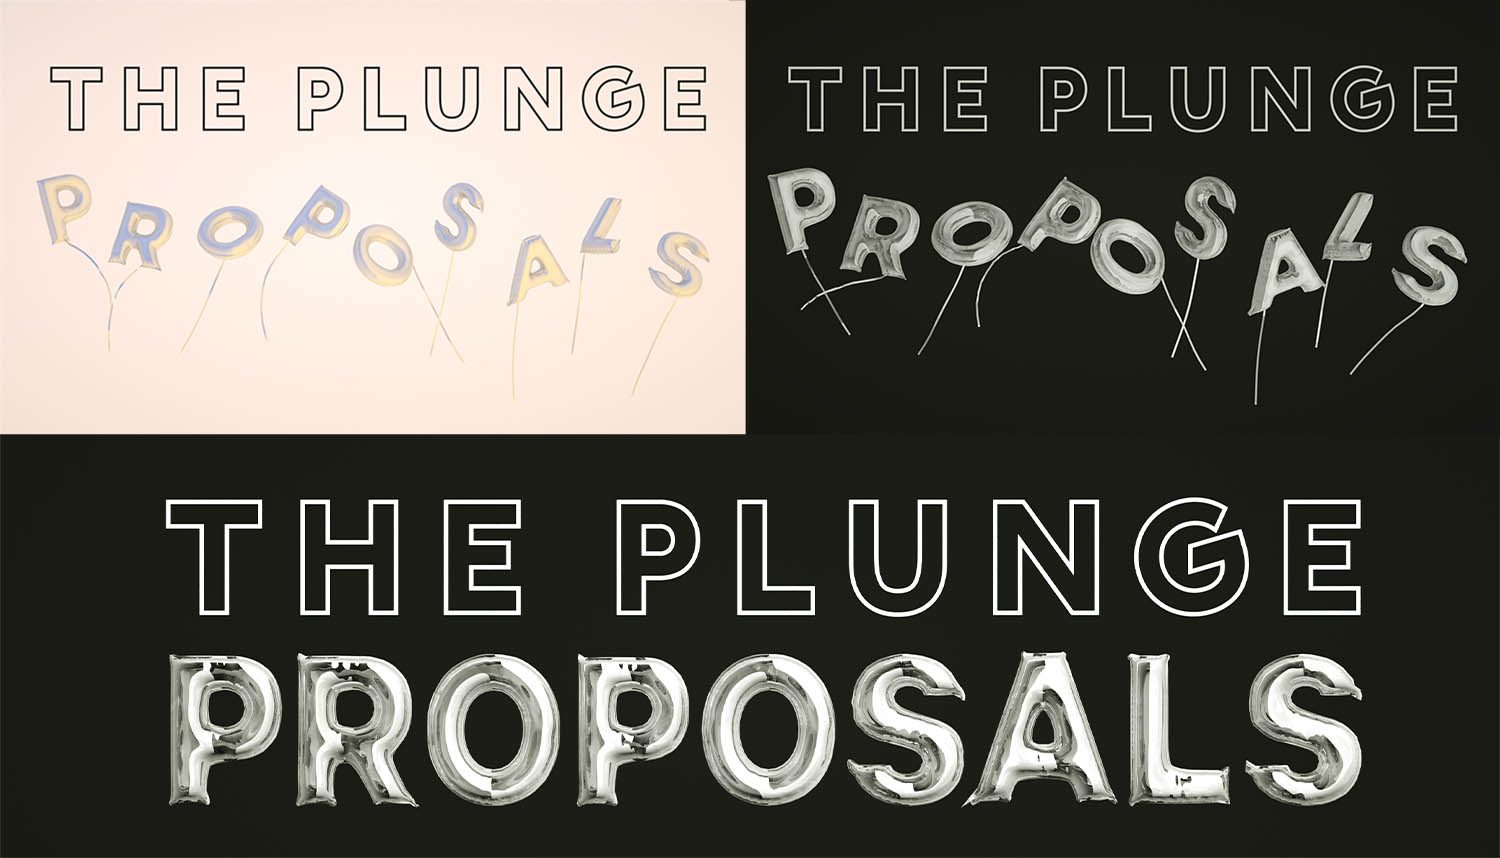 Earlier iterations of the Plunge Proposals logo/banner